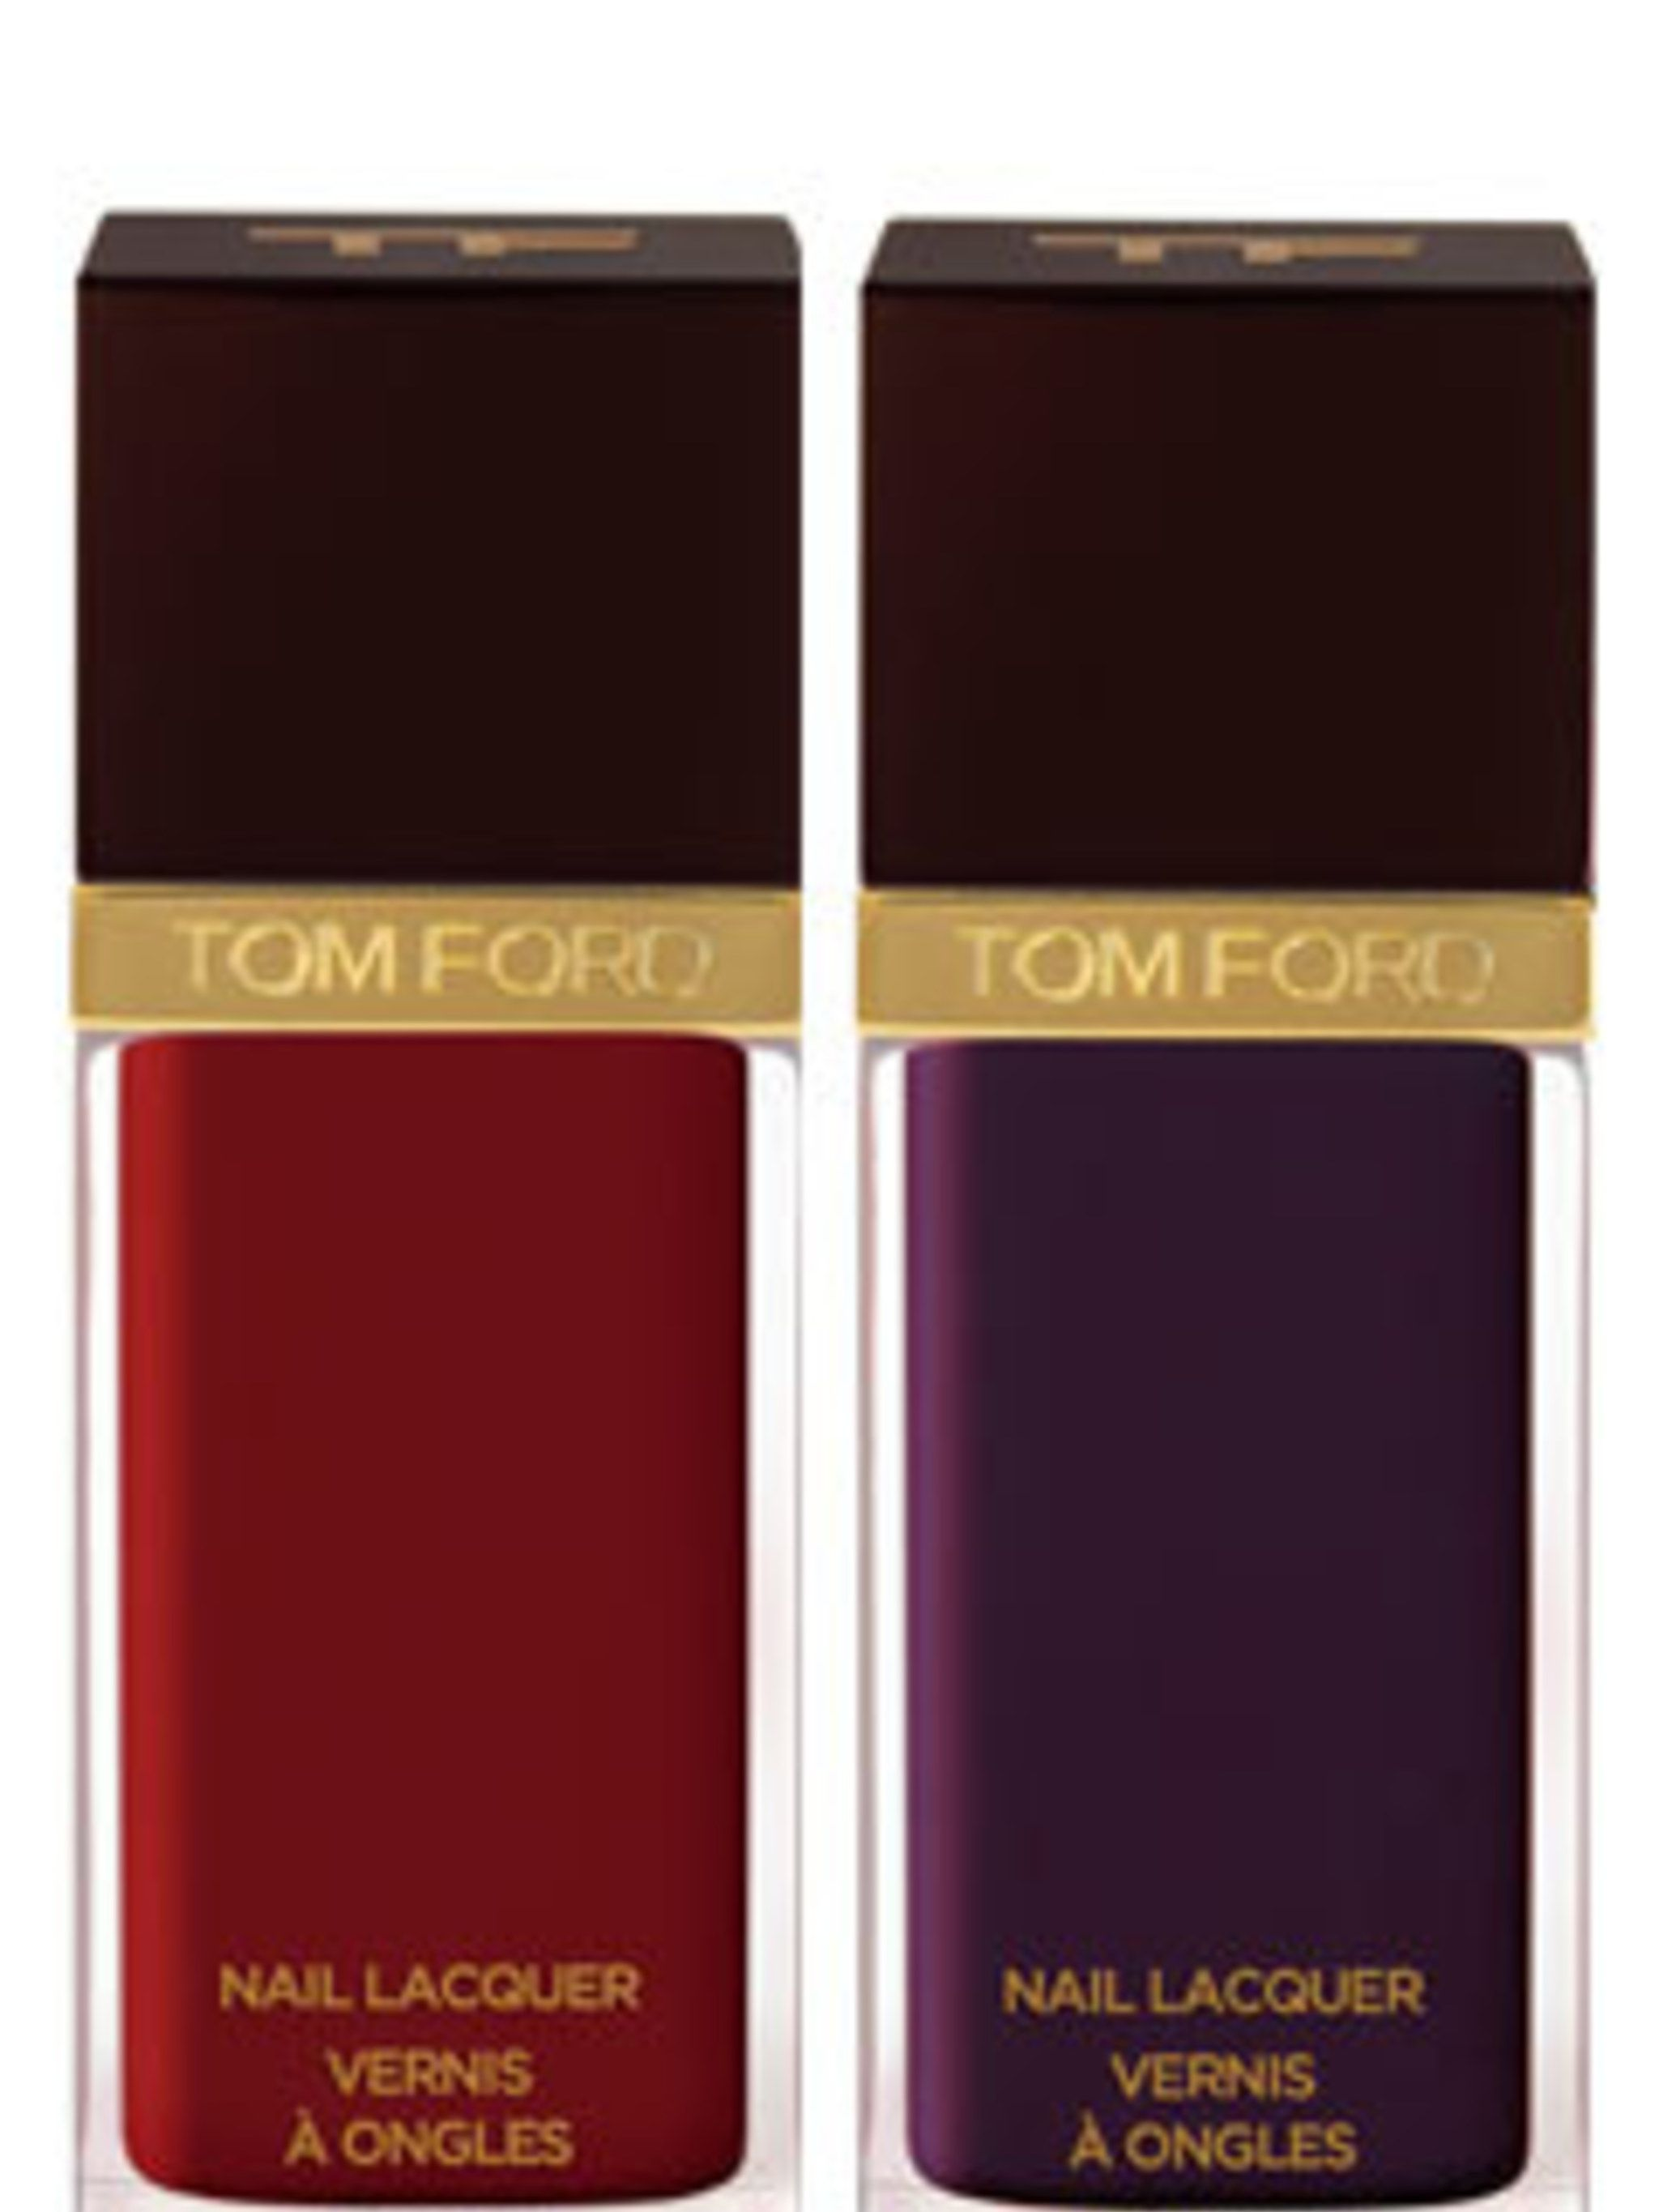 Tom Ford launches Nail Lacquer!